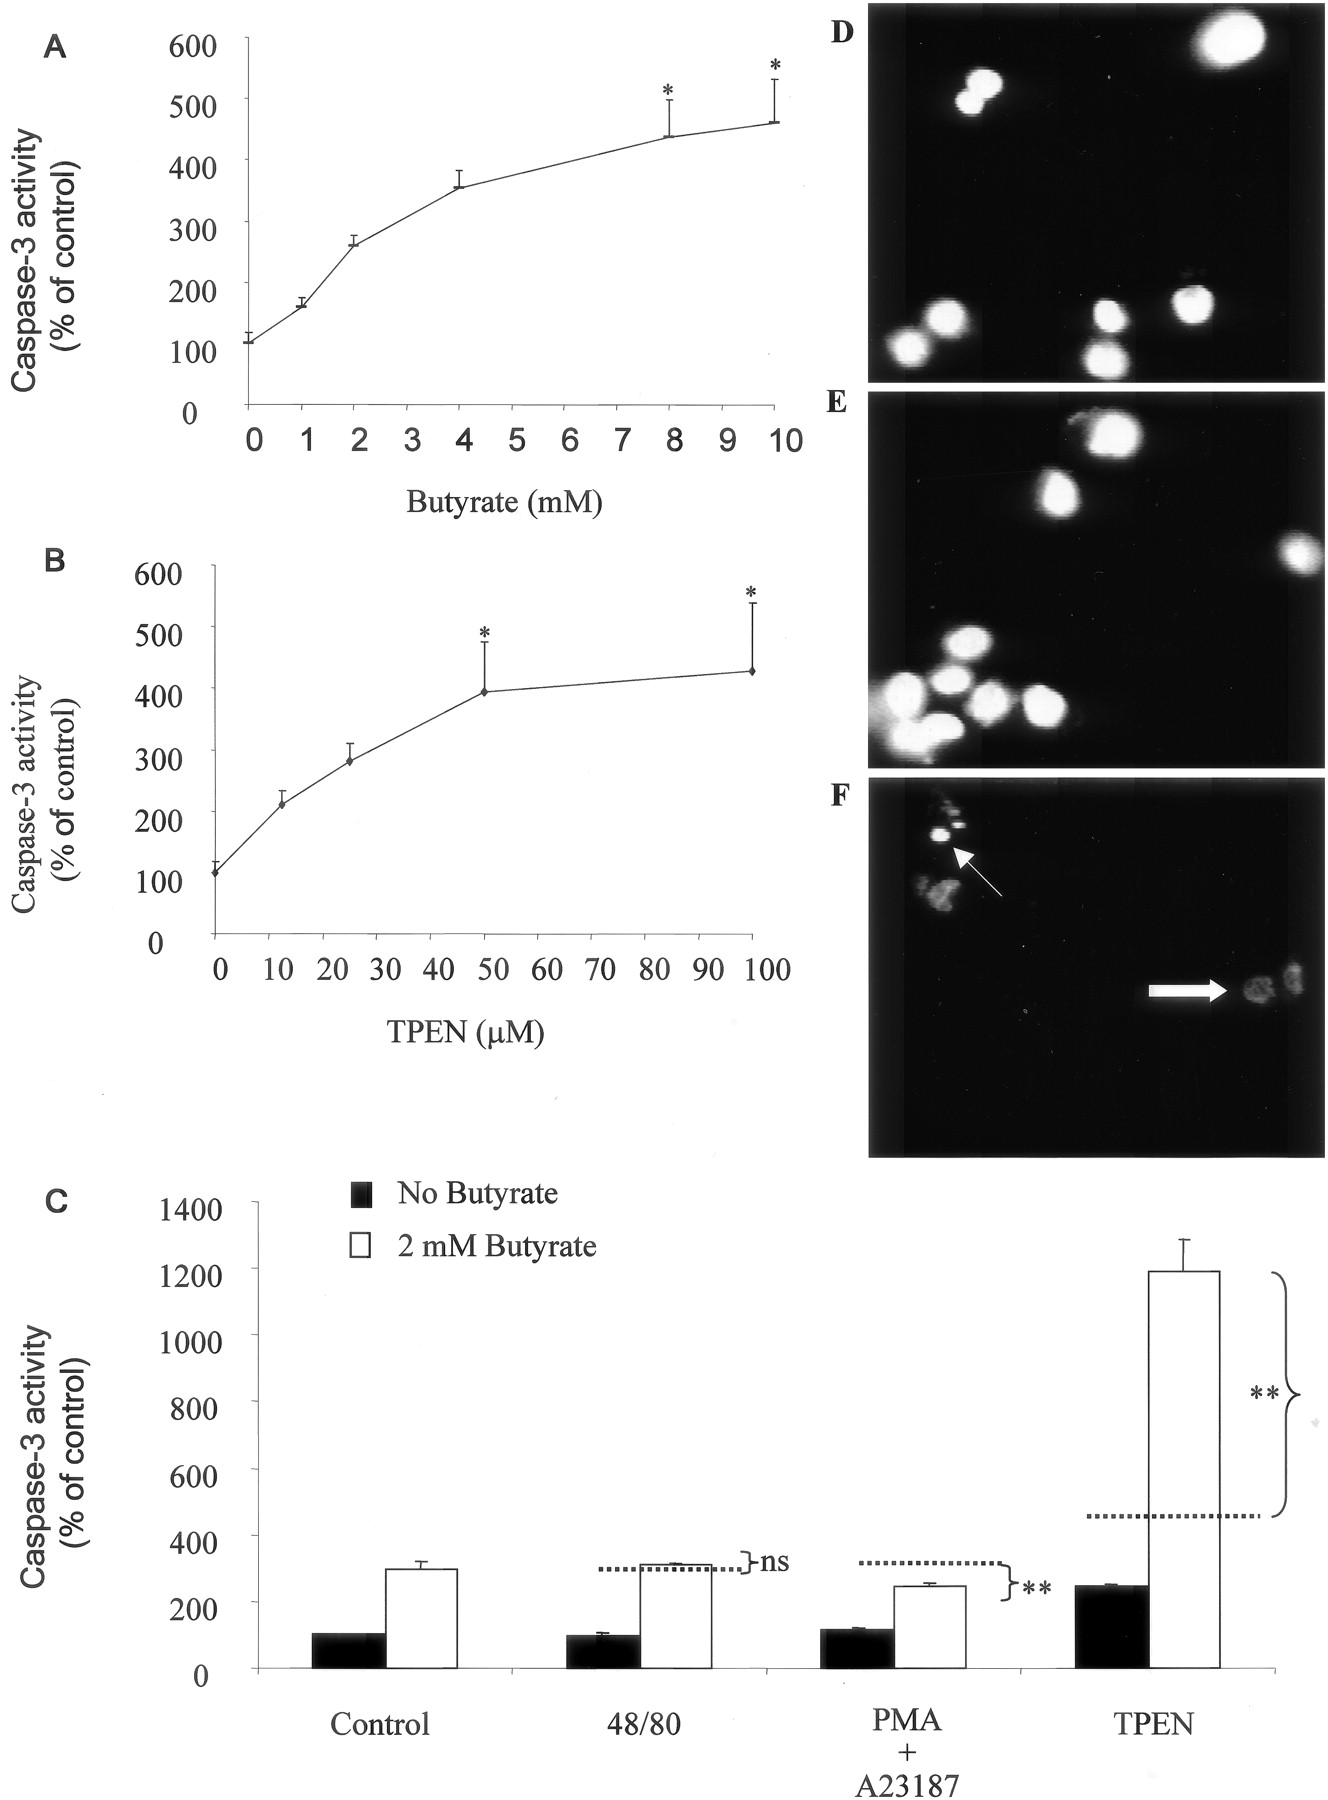 Labile Zinc And Transporter Znt4 In Mast Cell Granules Role How To Protect A Reed Switch From Specific Loads Cynergy 3 Download Figure